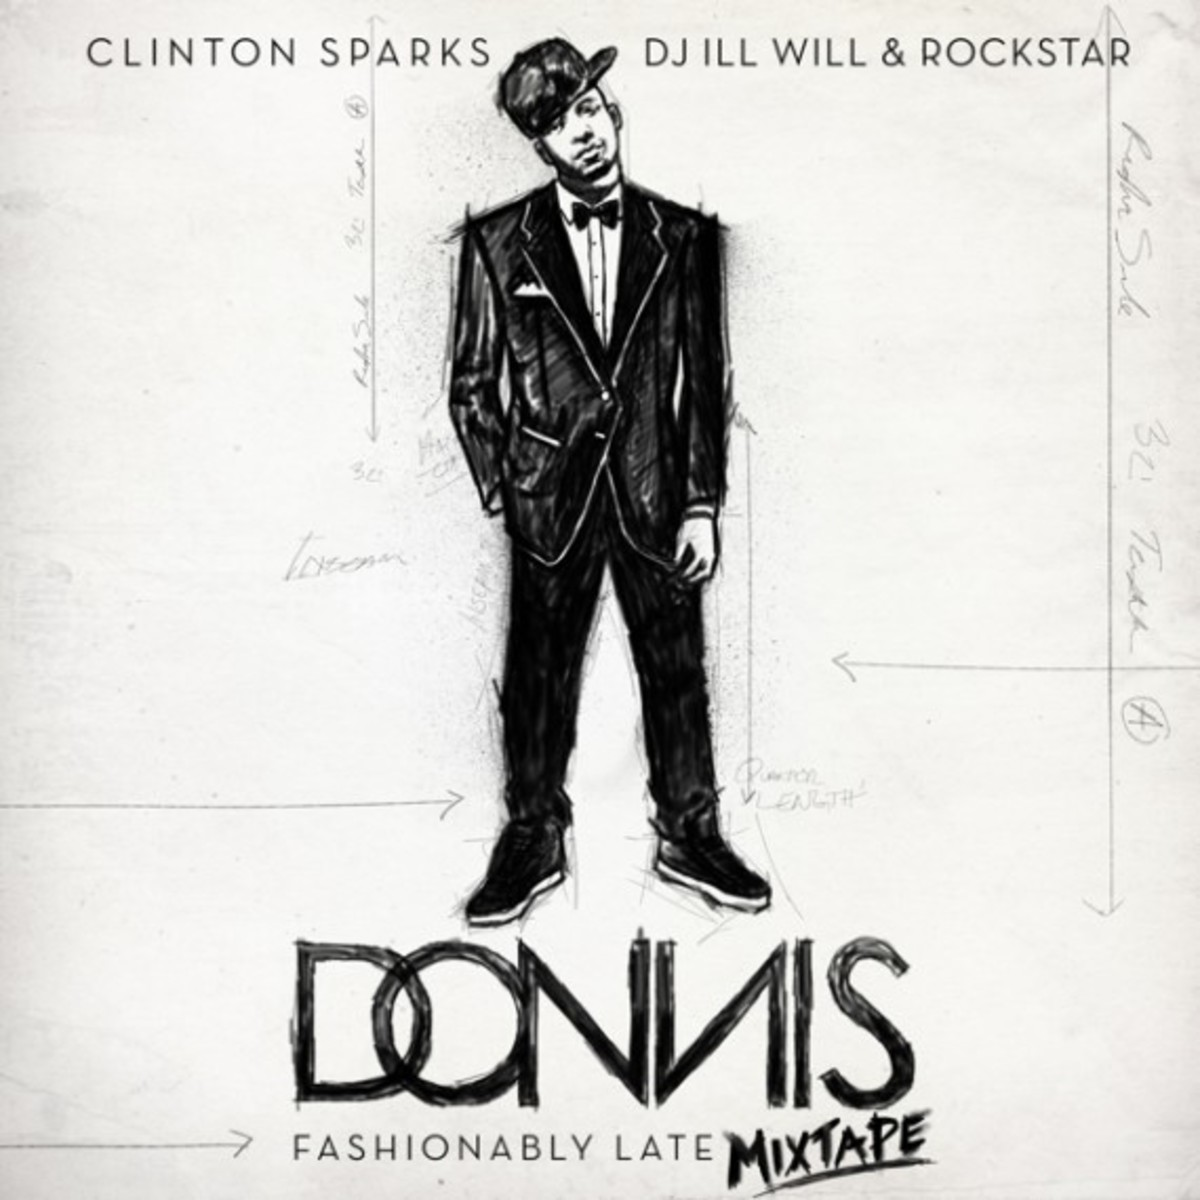 donnis-fashionably-late-mixtape-1